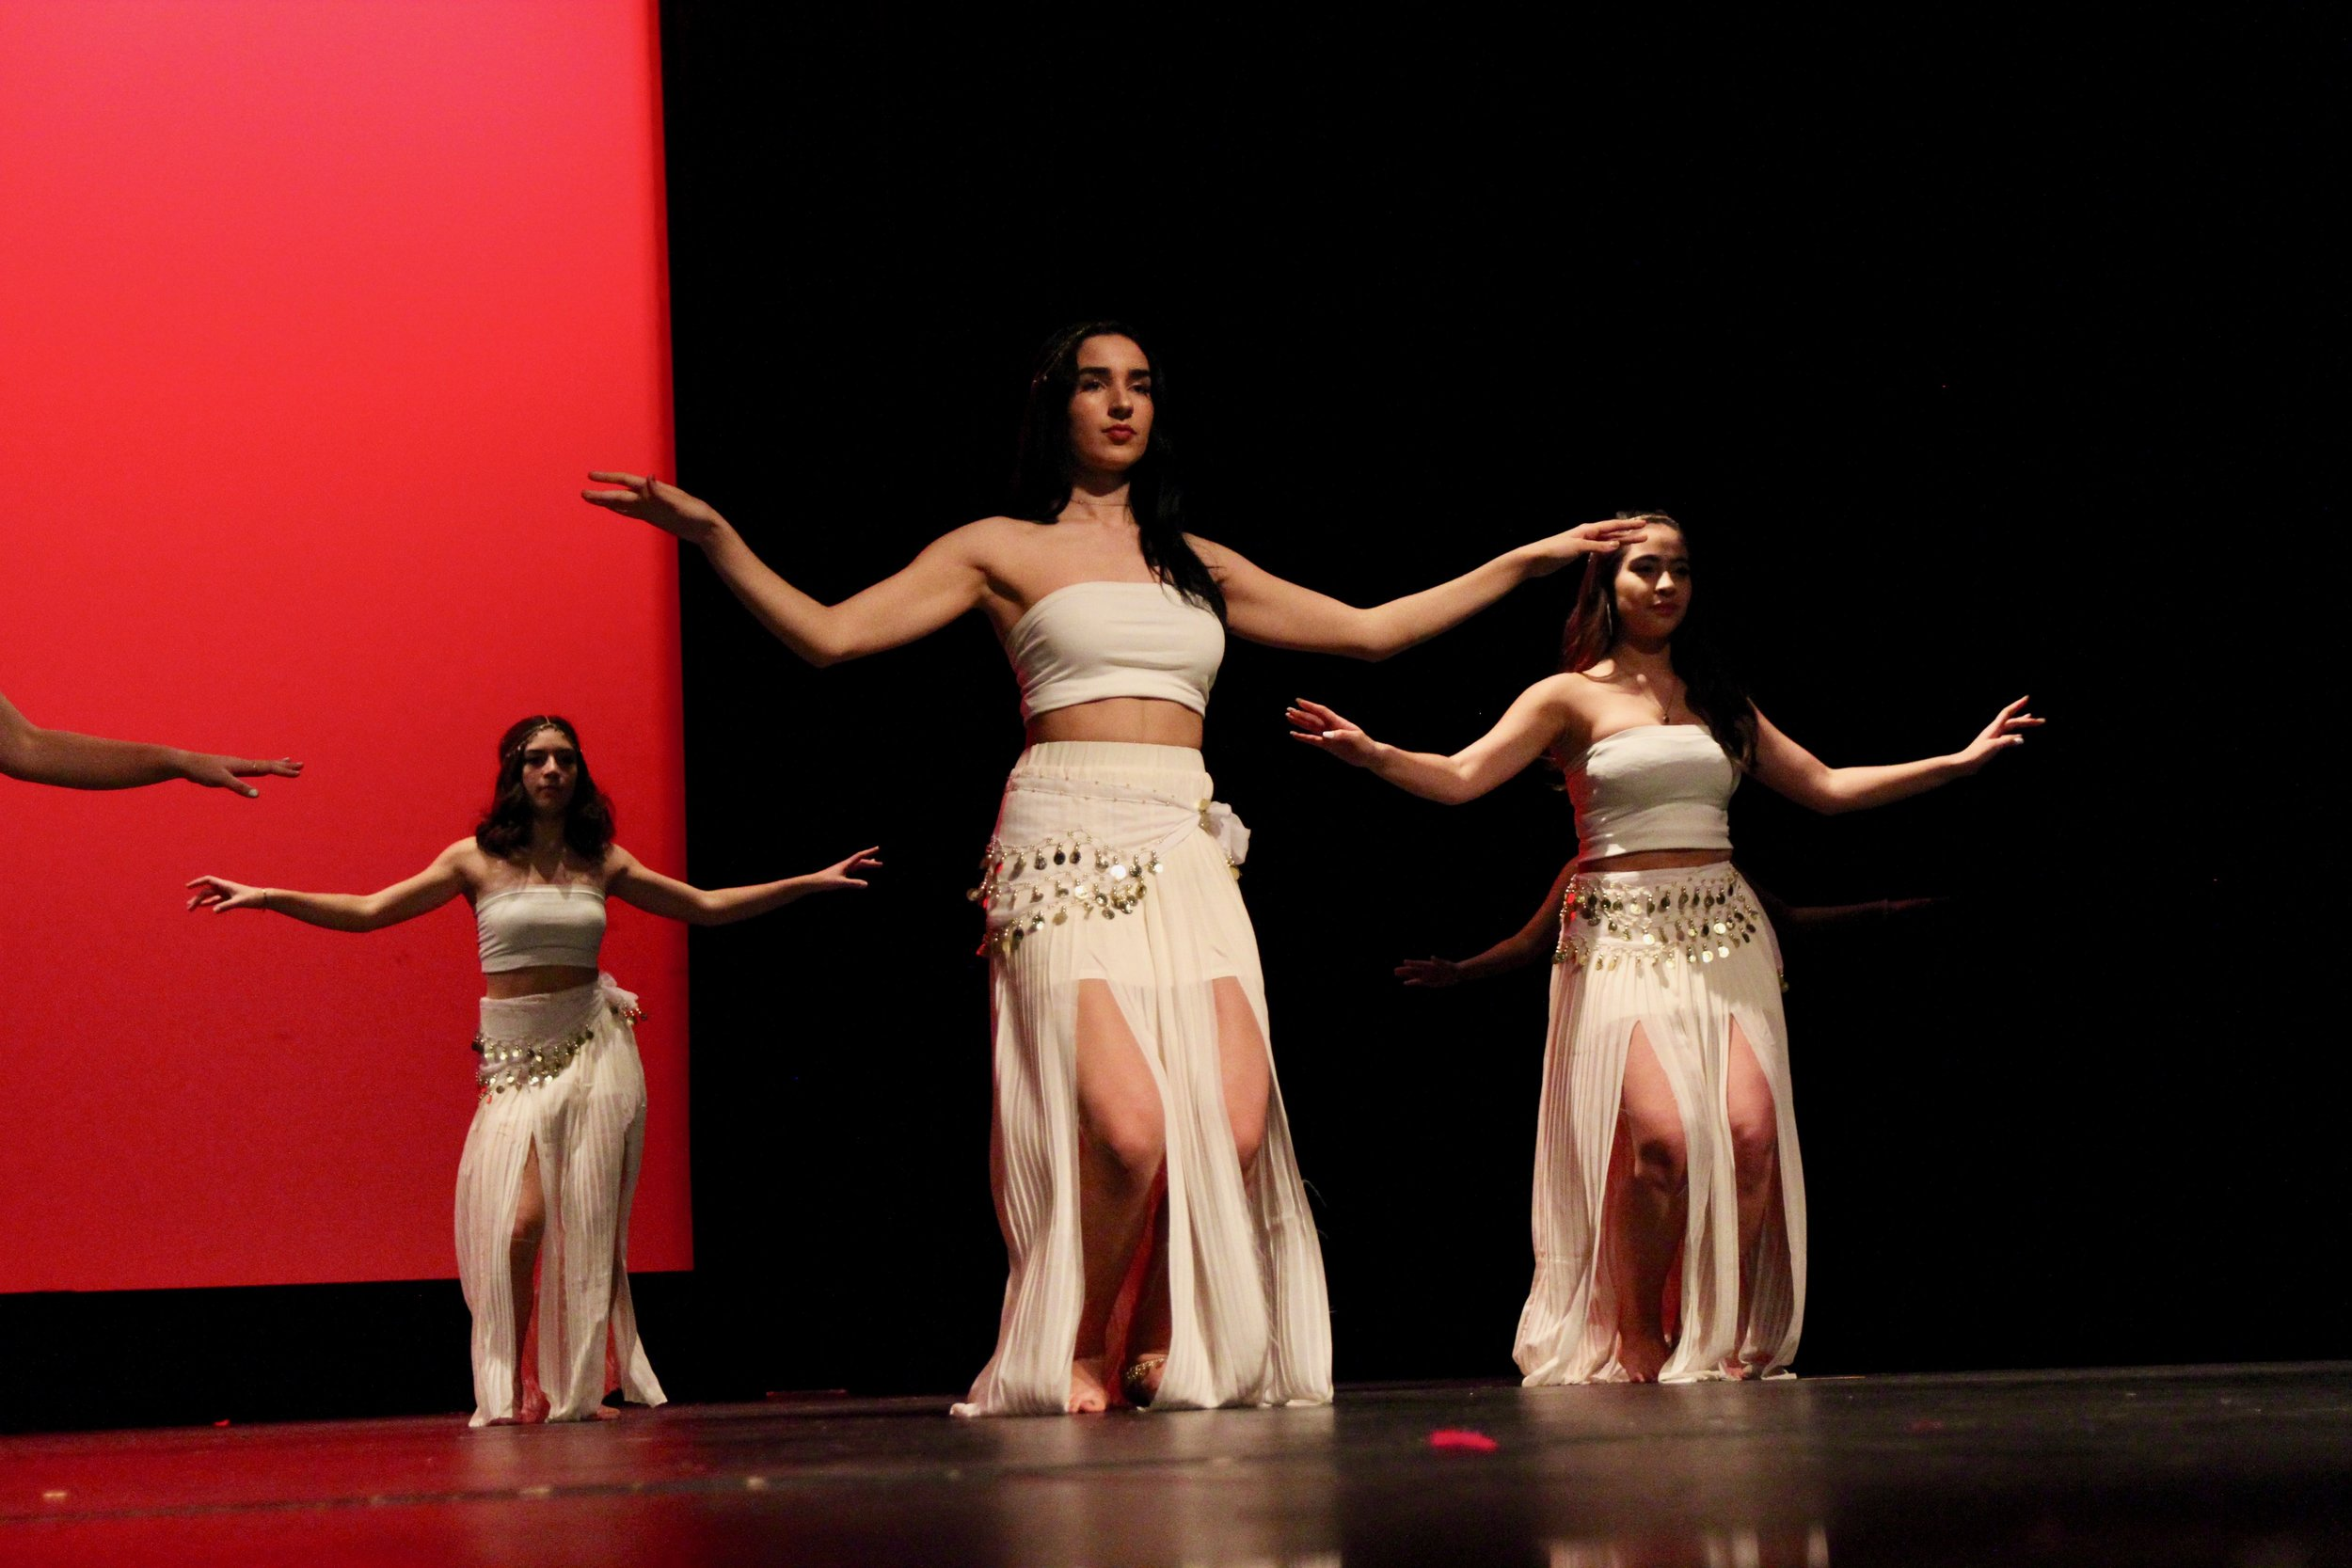 Sarah Kamal and Kiara Aldana, Adv. 902, shake their hips adorned with gold beads as they charm the audience with their sultry dance